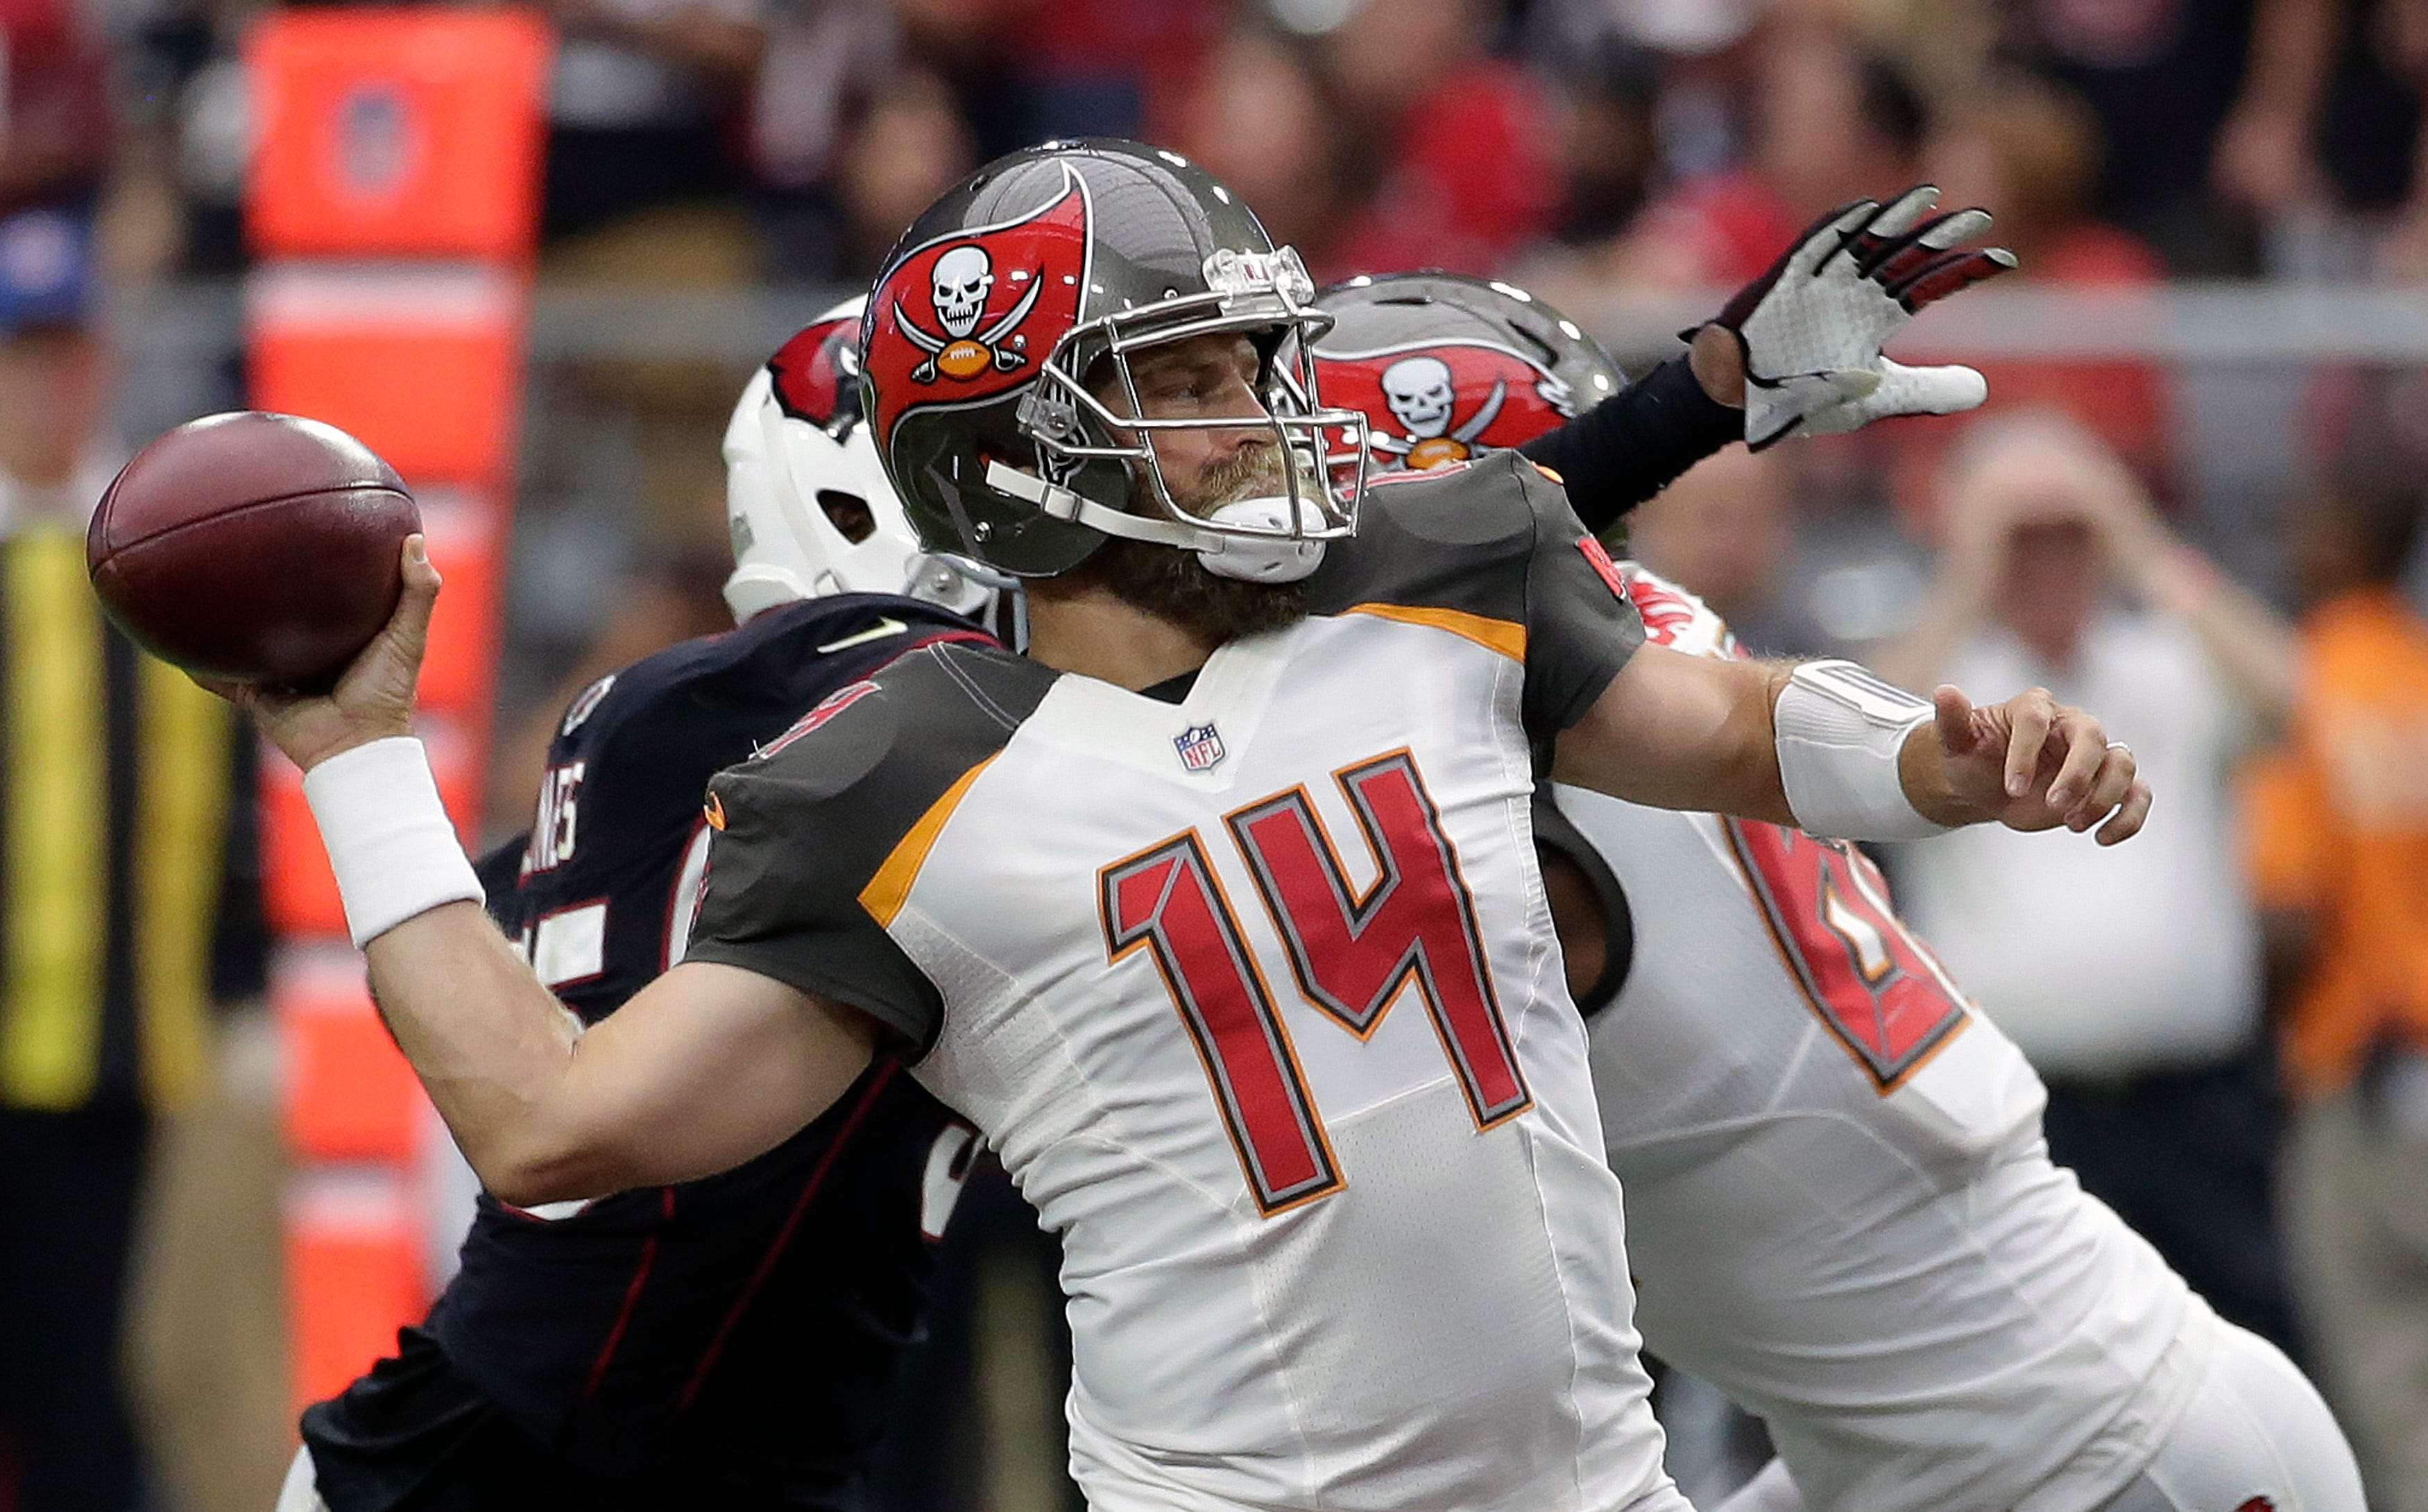 Peterson scores twice as Cardinals hold off Bucs 38-33